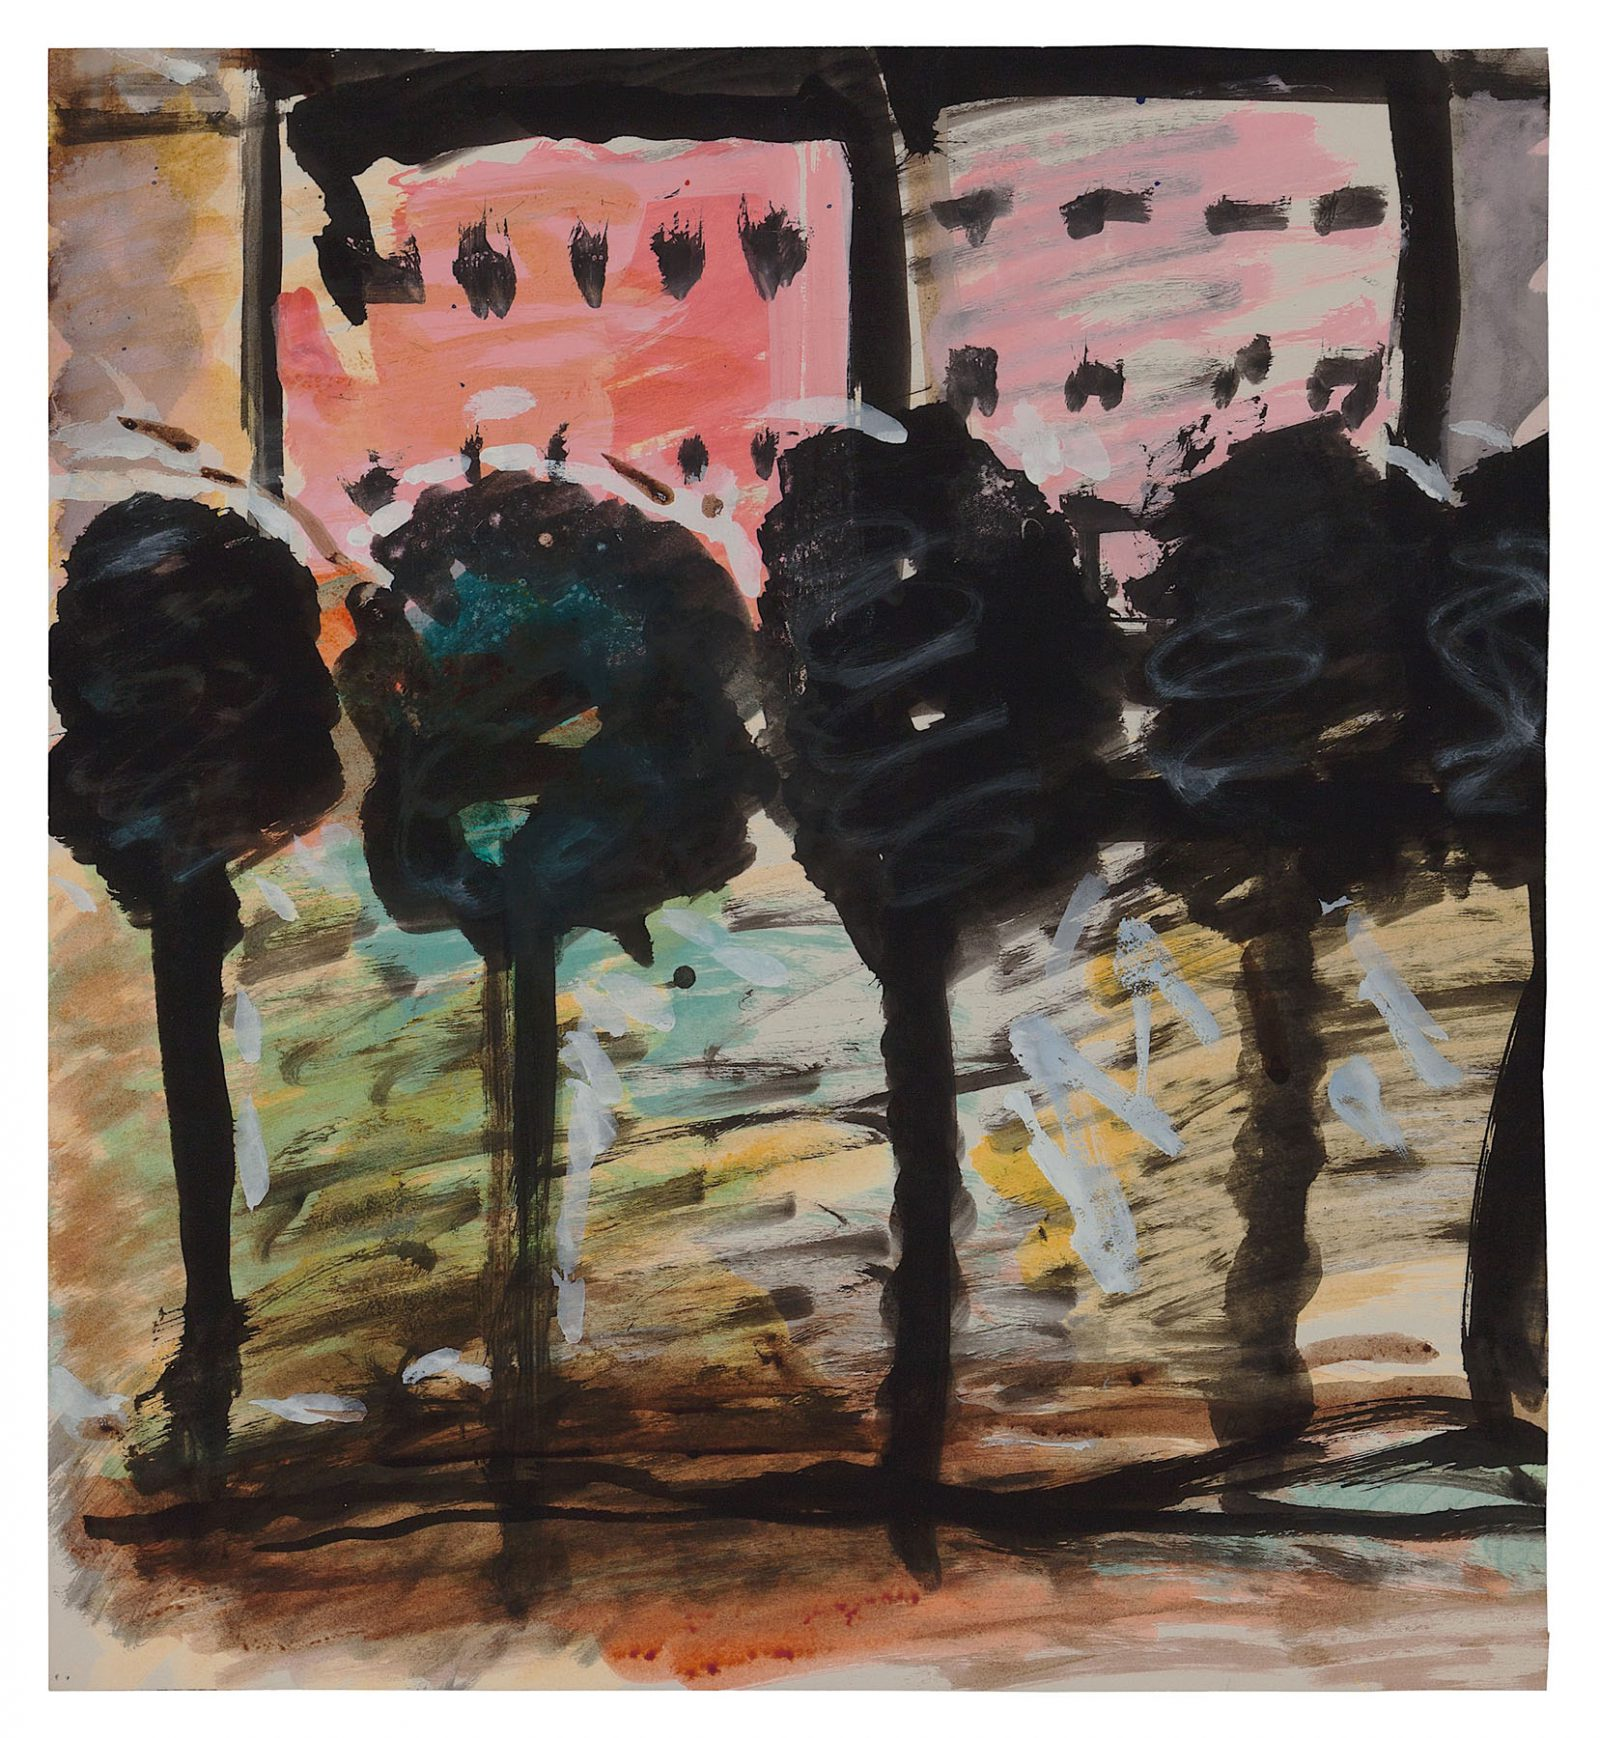 Uncle Tom's Cabin (Street Named after Corner Pub, Berlin), c. 1958. White gouache, black ink and watercolour on paper, 18.5 x 18.8 in. (47 x 42.8 cm). Private collection. Photo Malcolm Varon ©Bianca Stock